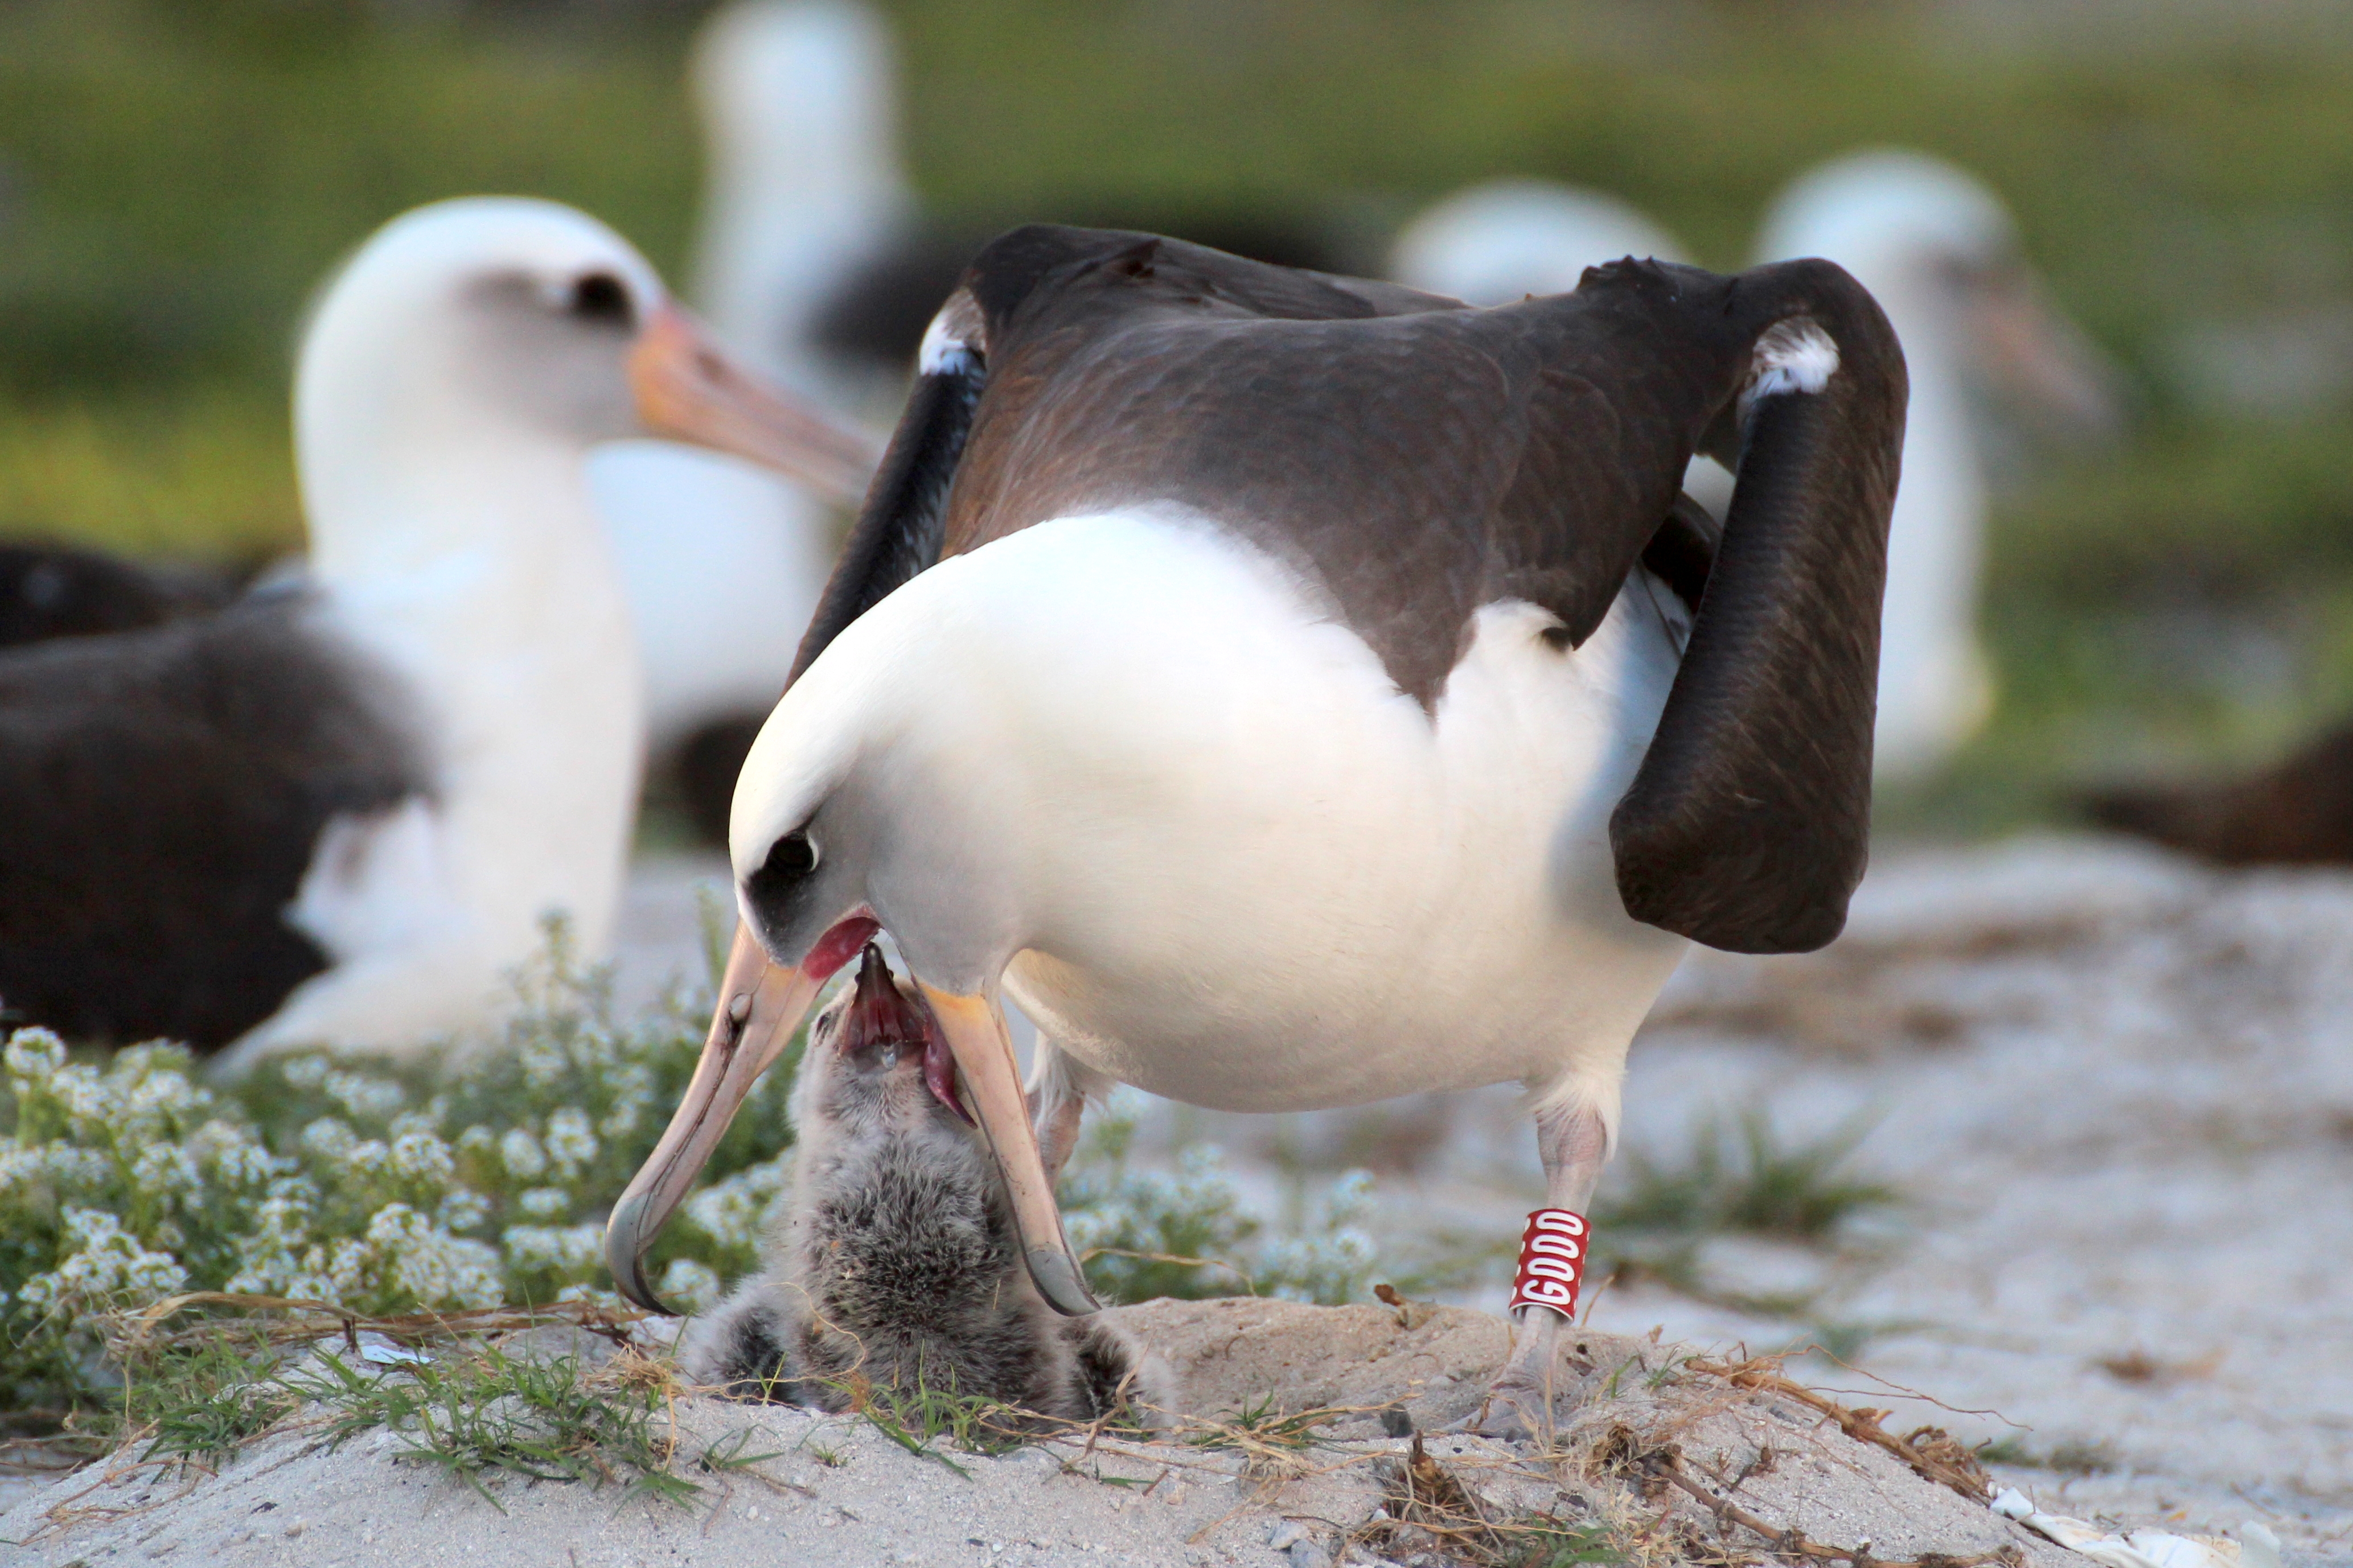 Wisdom's mate, Akeakamai, feeds Kukini one of its first meals. Image credit: Kiah Walker/Midway Atoll National Wildlife Refuge.